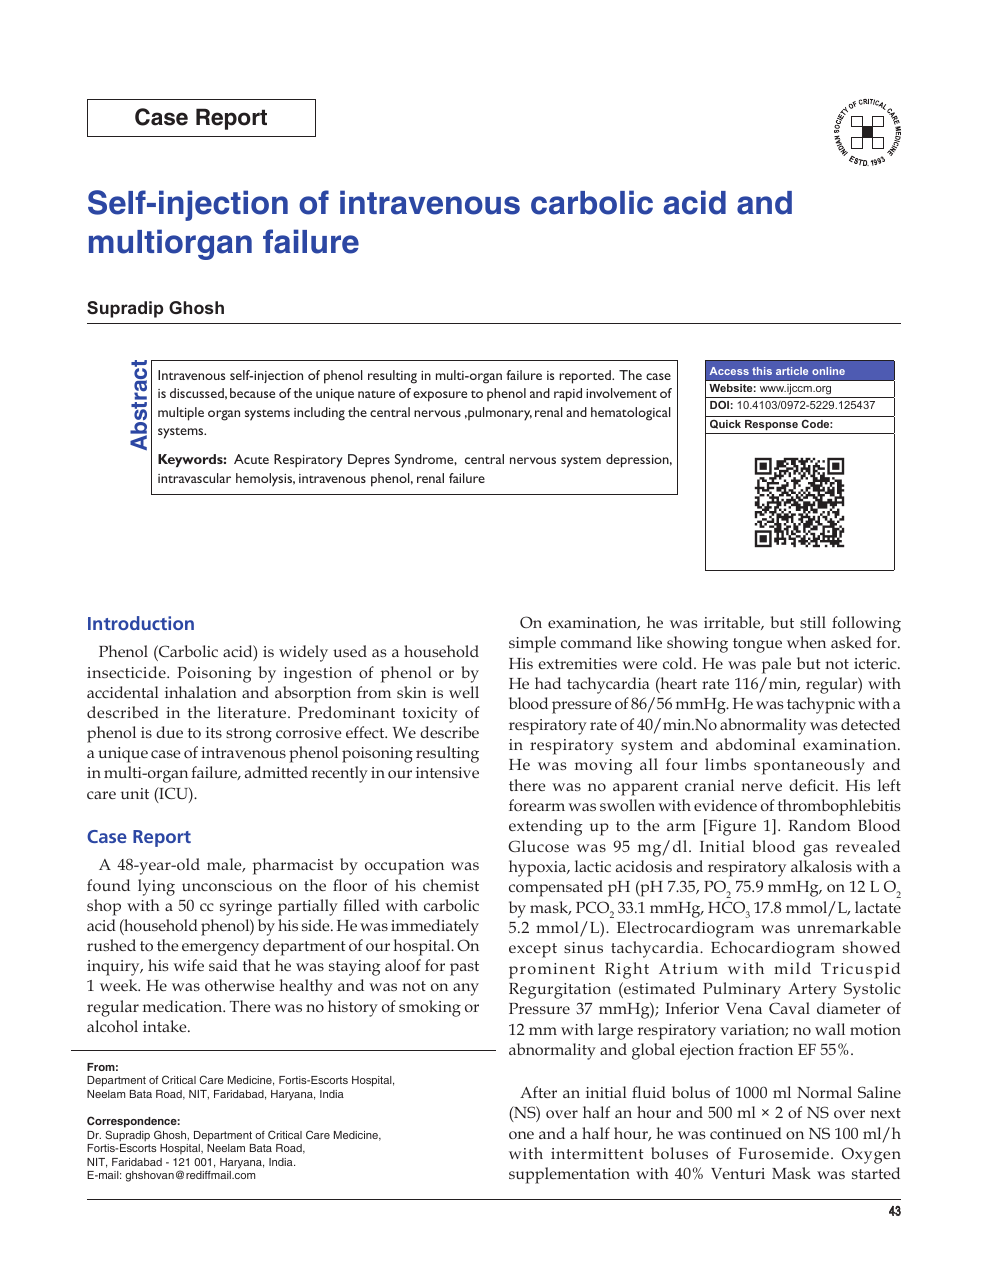 Self-injection of intravenous carbolic acid and multiorgan